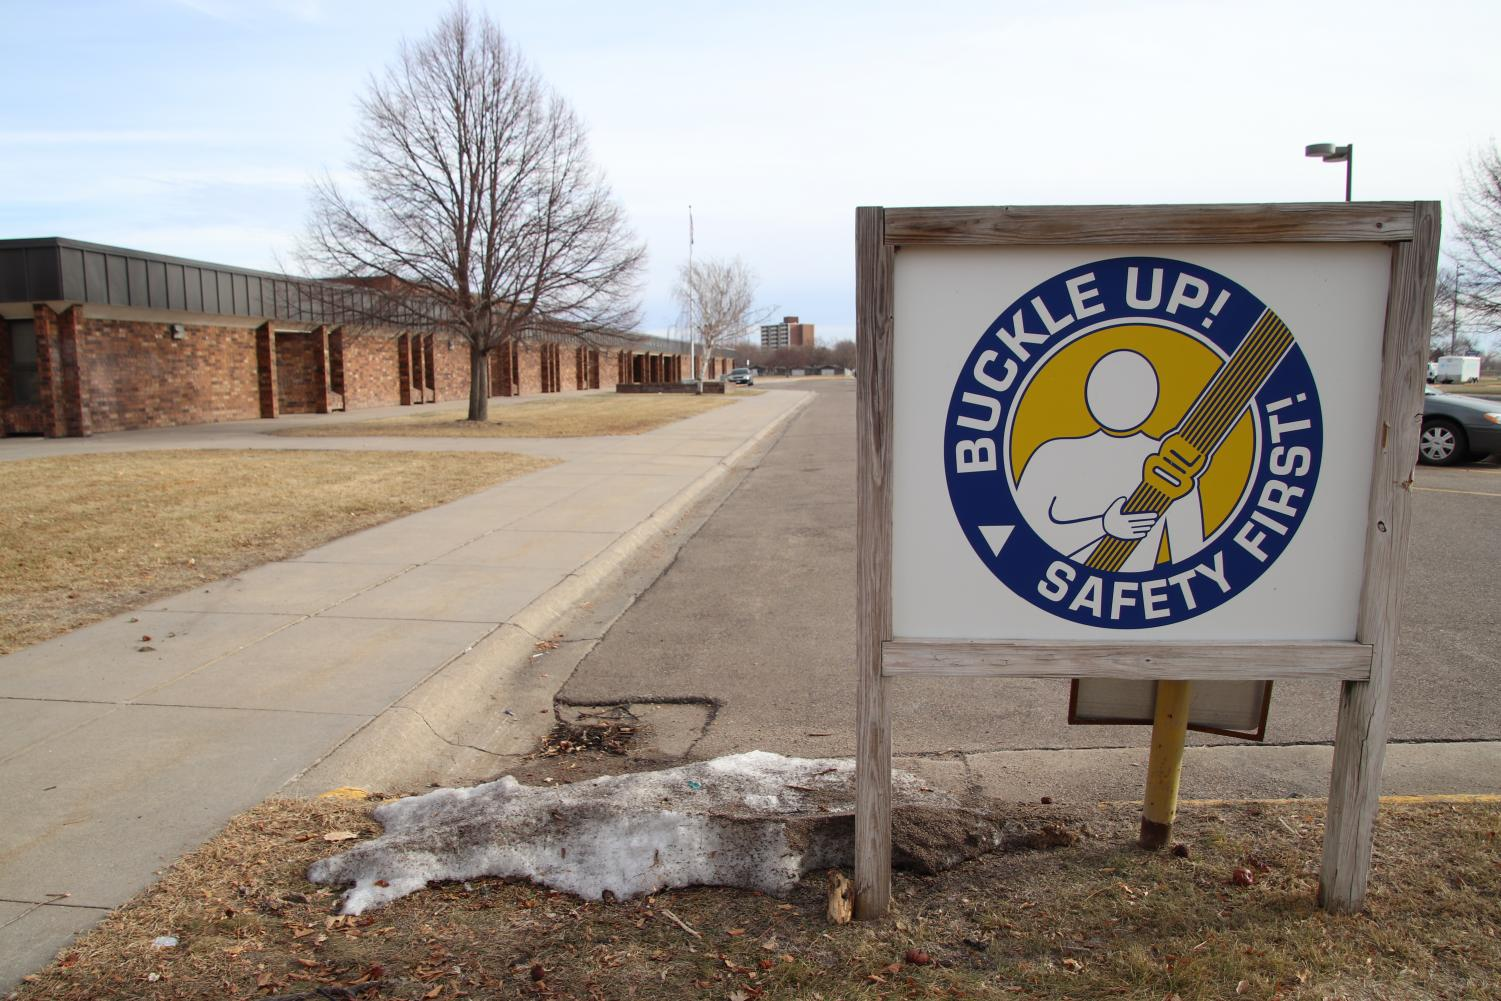 Safety is in the forefront of the school district's mind right now.